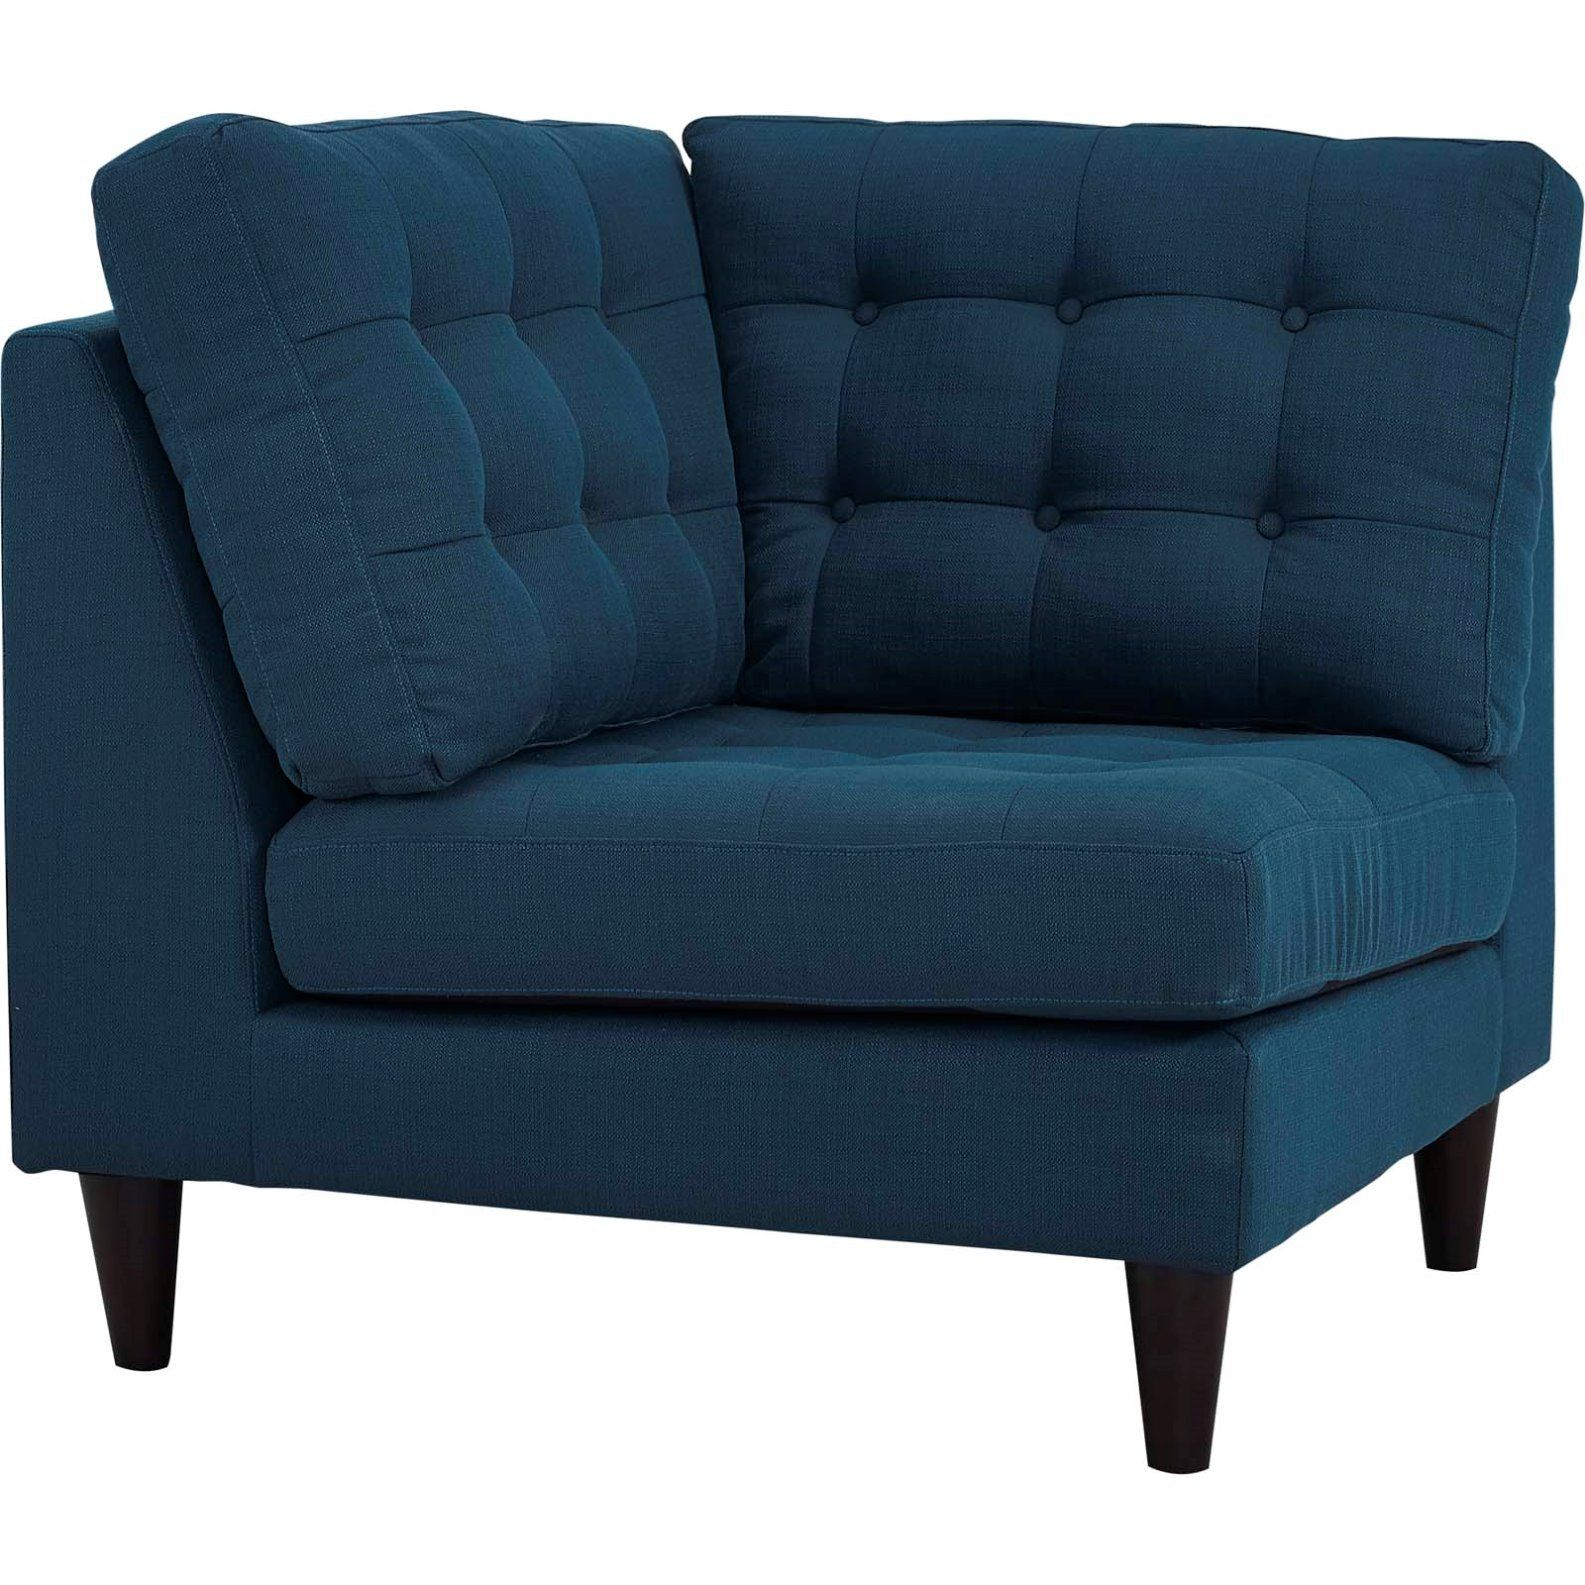 Modern Contemporary Urban Design Living Lounge Room Corner Sofa Chair Navy Blue Fabric Discover More By Checking With Images Upholstered Fabric Corner Sofa Sofa Chair